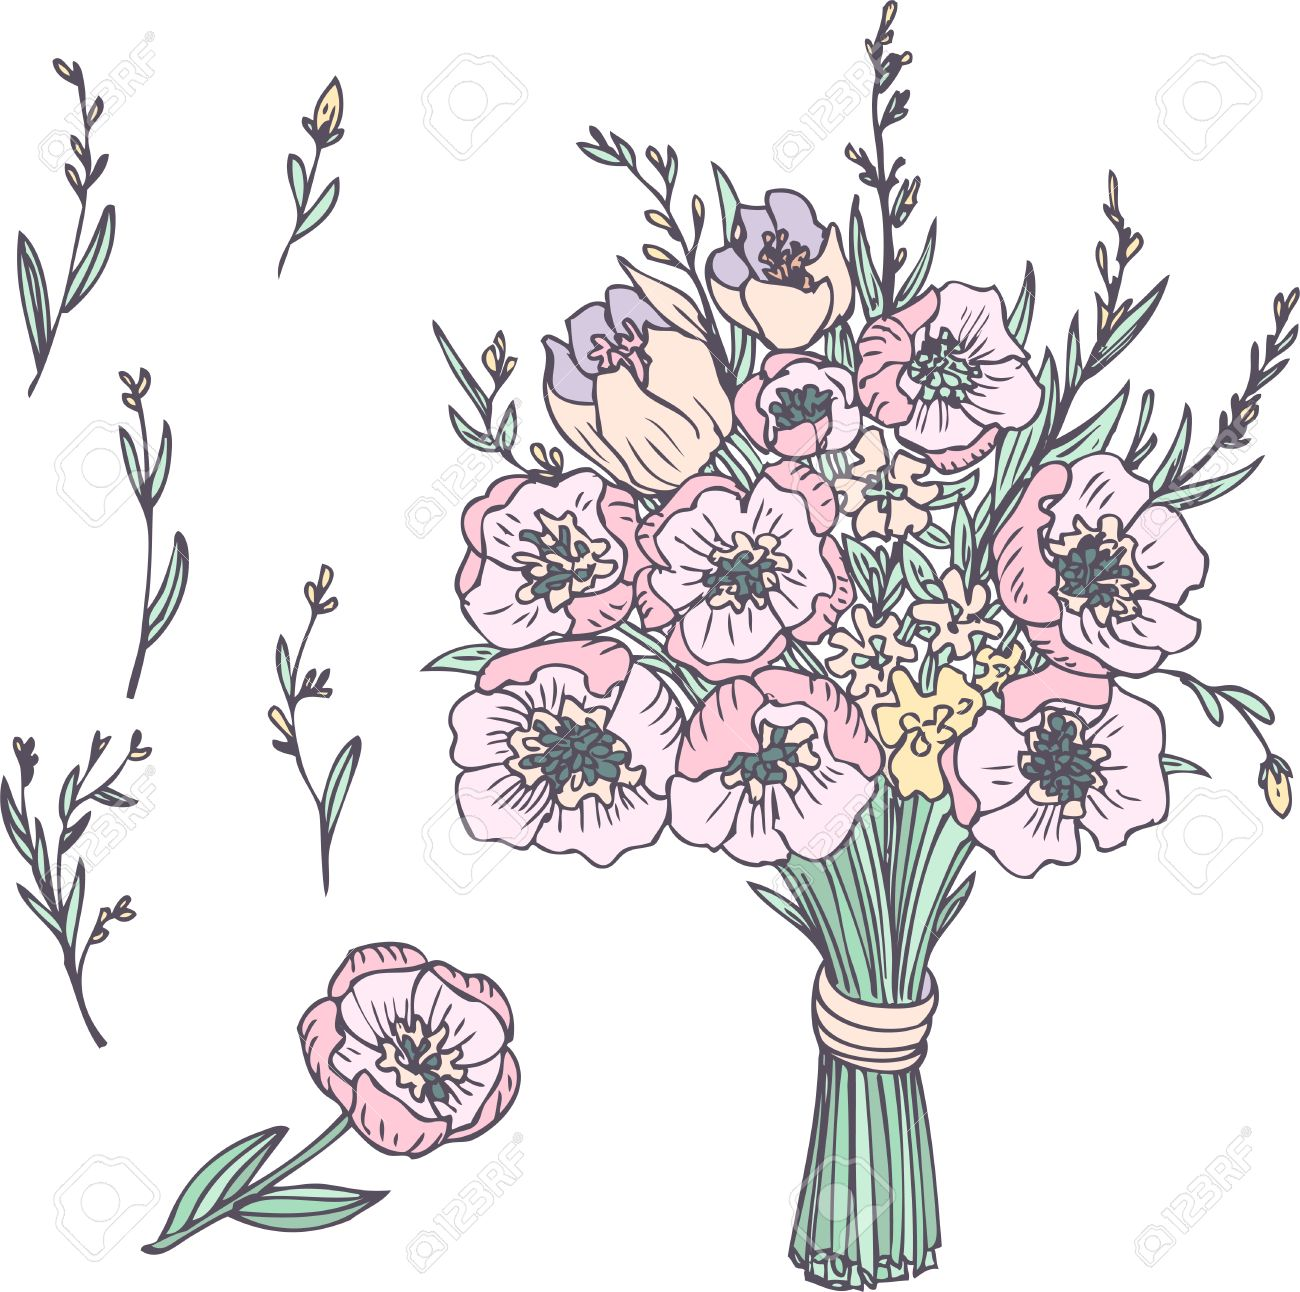 Linear drawing bouquet of flowers hand drawn vector illustration stock vector 41365161